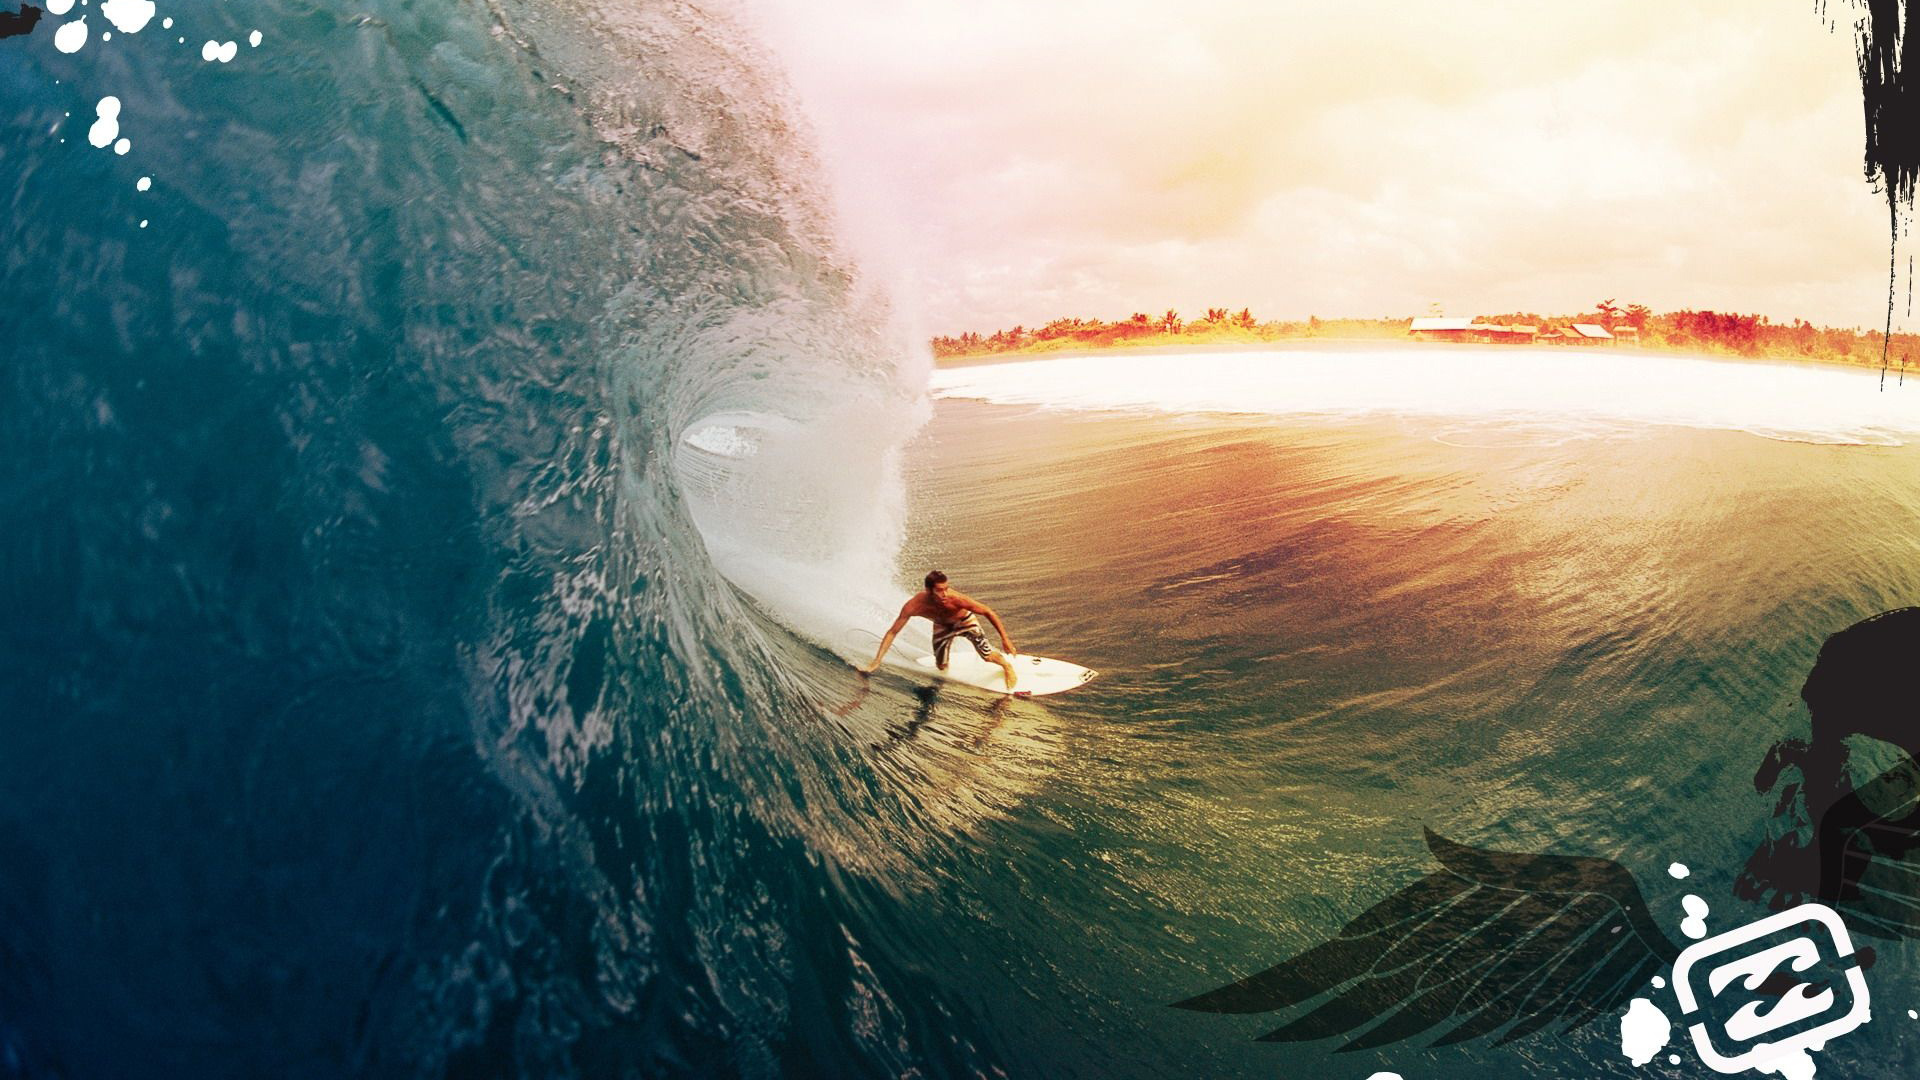 49 Surfing Computer Wallpaper On Wallpapersafari